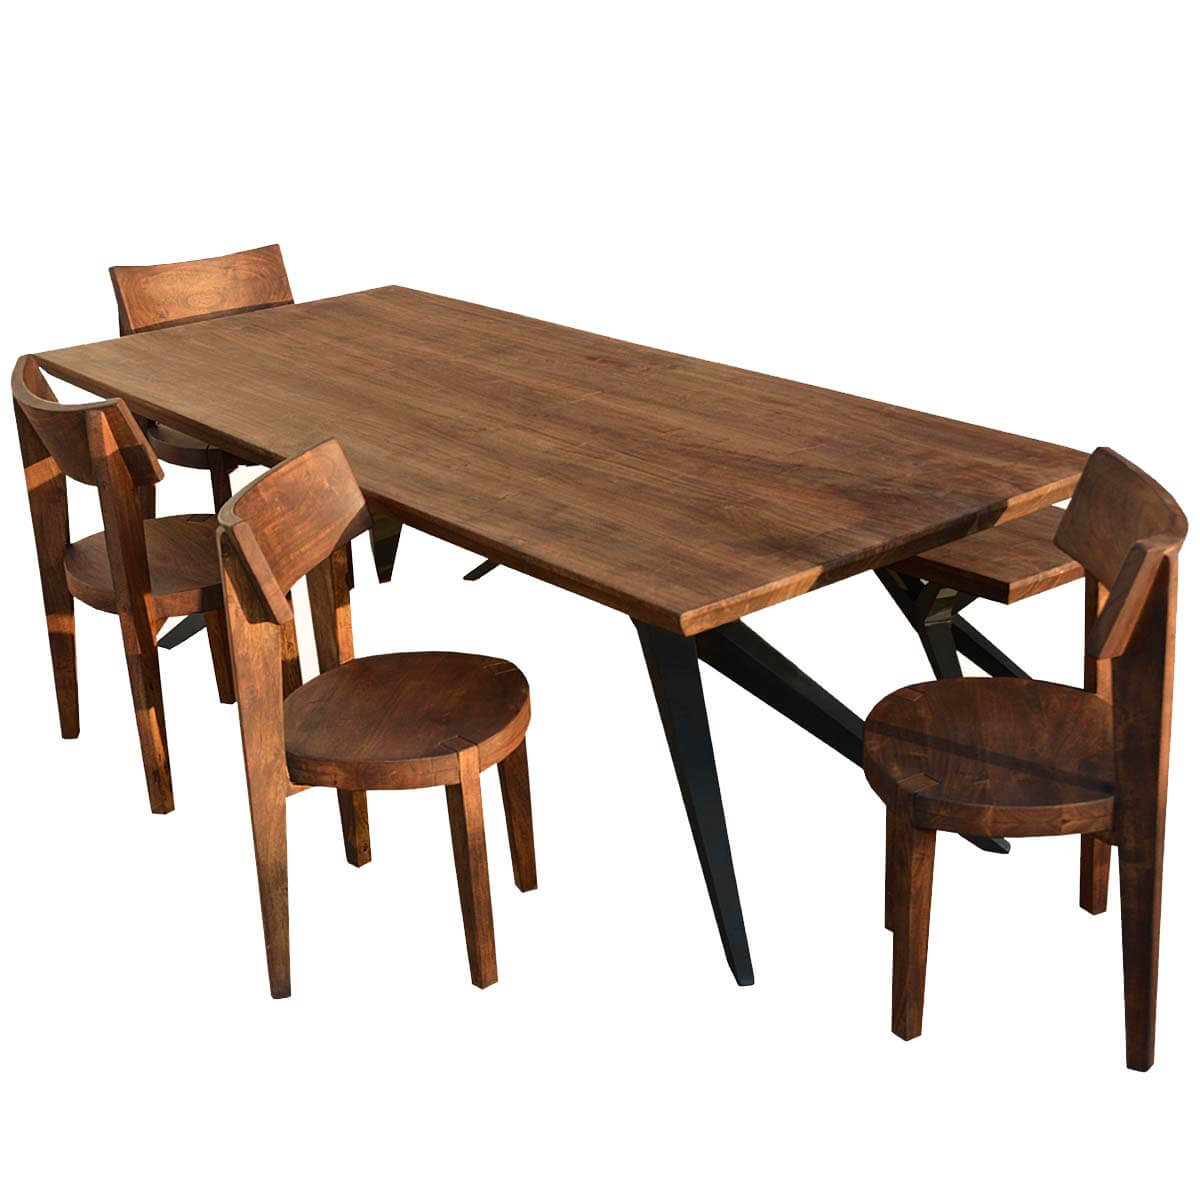 Unique rustic urban loft industrial dining table chair for Unique dining table sets